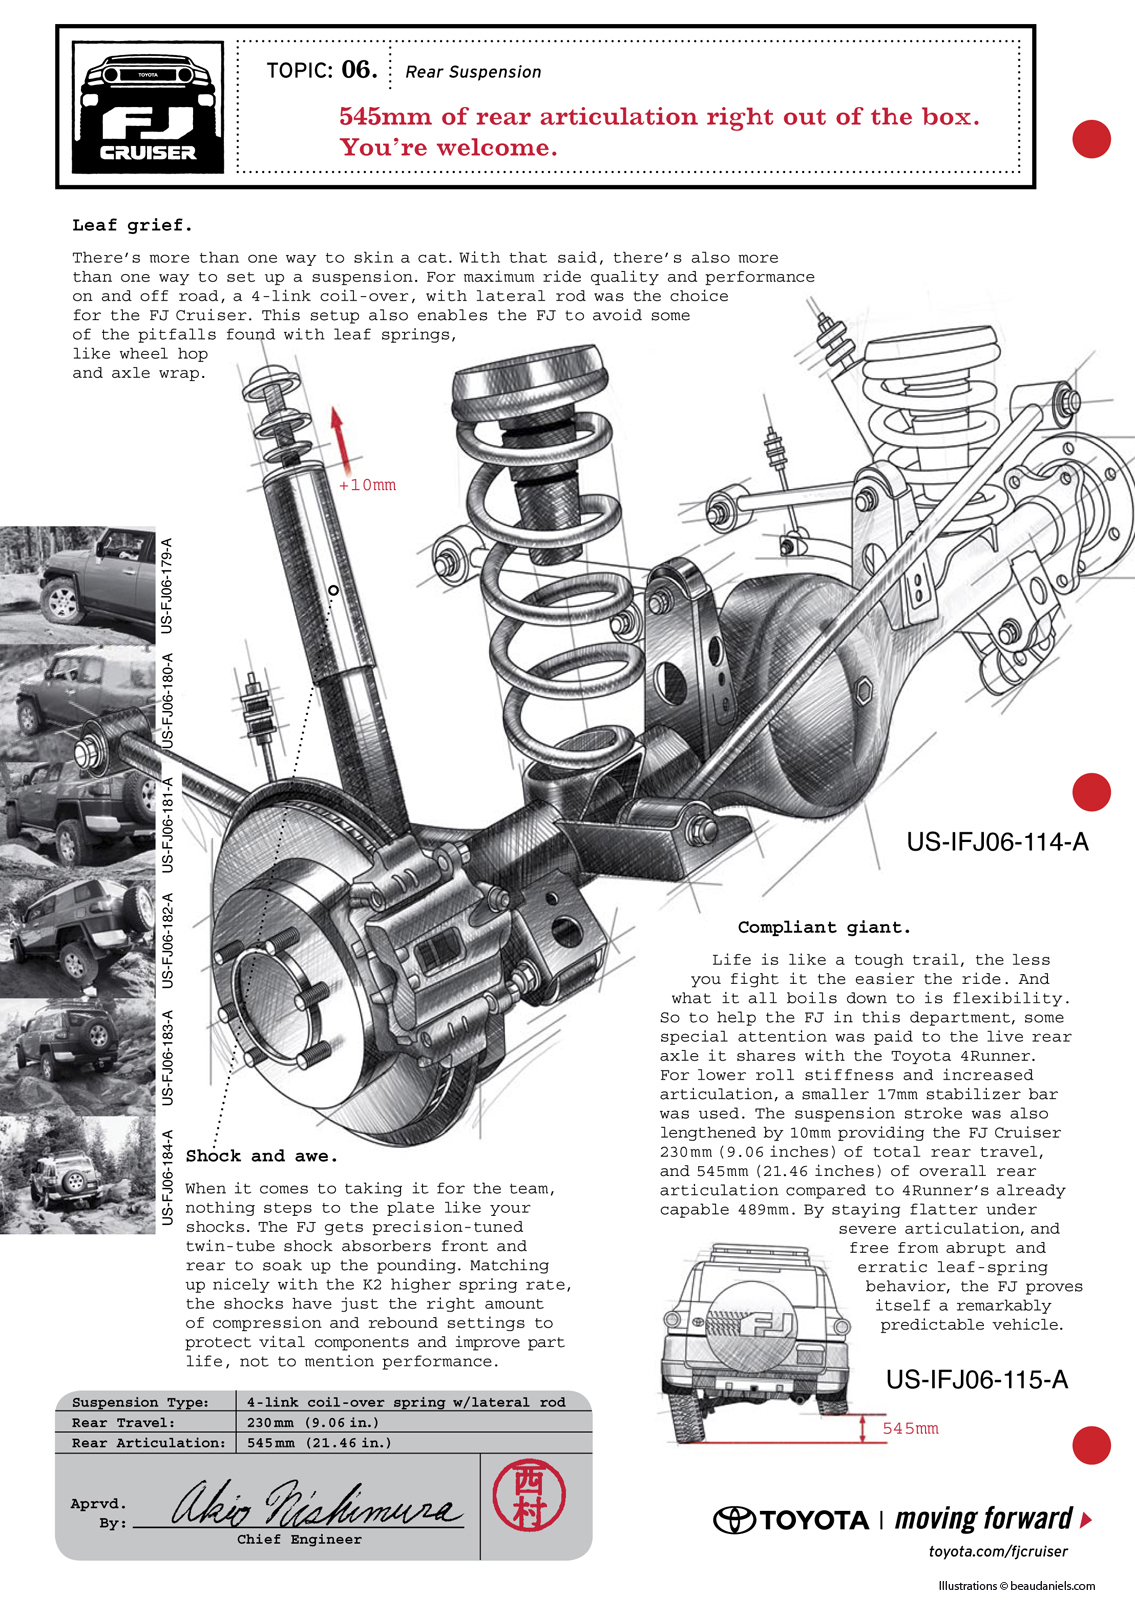 Fj Cruiser Engine Part Diagram Schematics Data 2007 Toyota Ads On Behance Body Parts